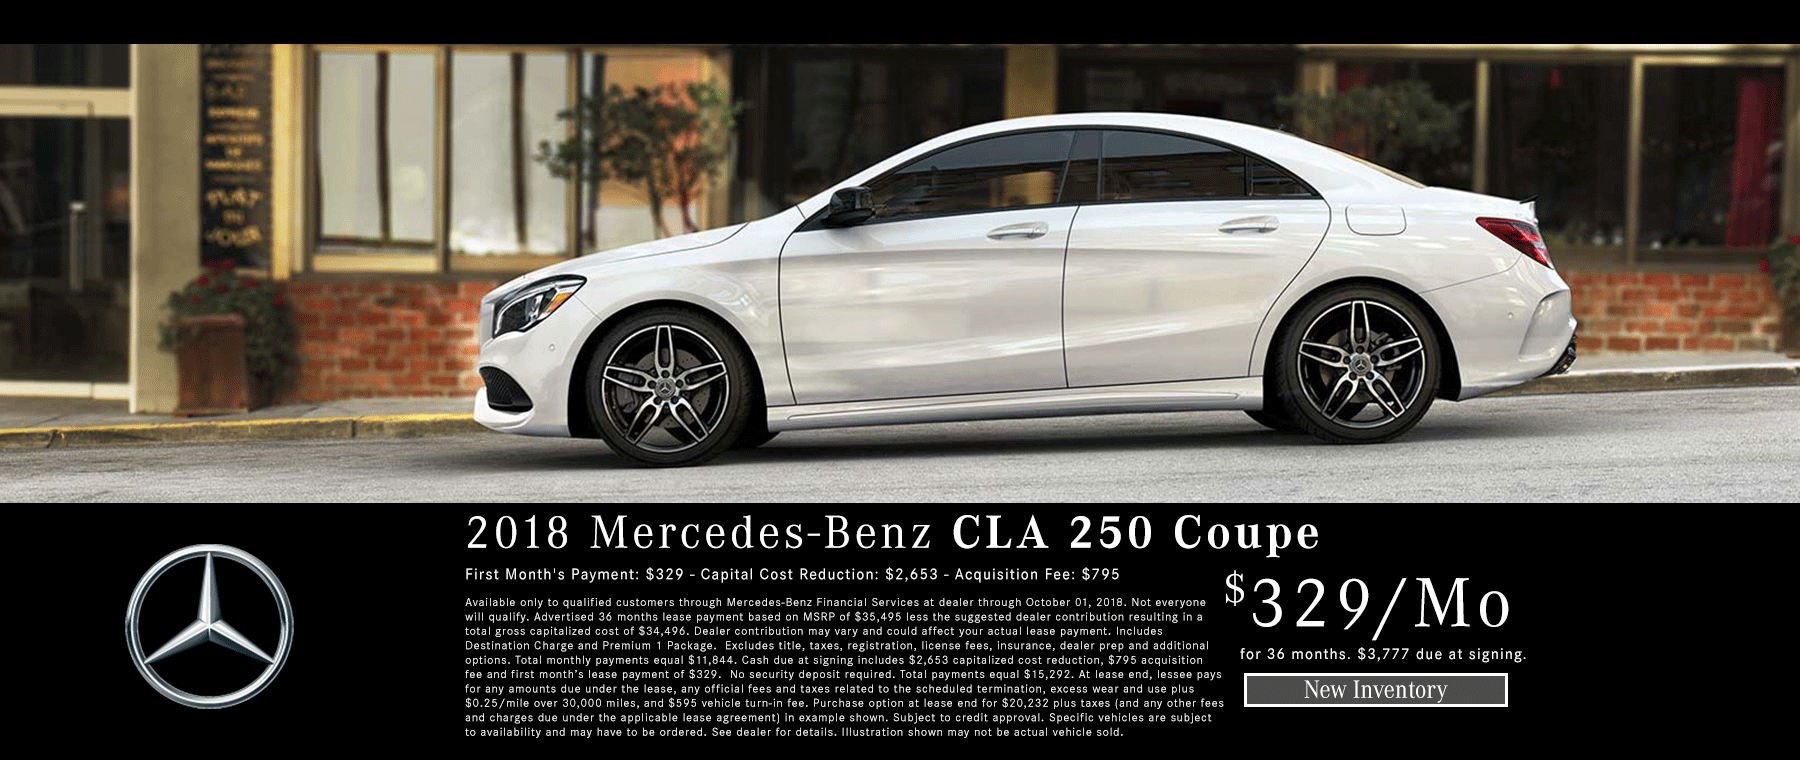 2018 Mercedes-Benz CLA 250 Coupe For Sale Bakersfiedl